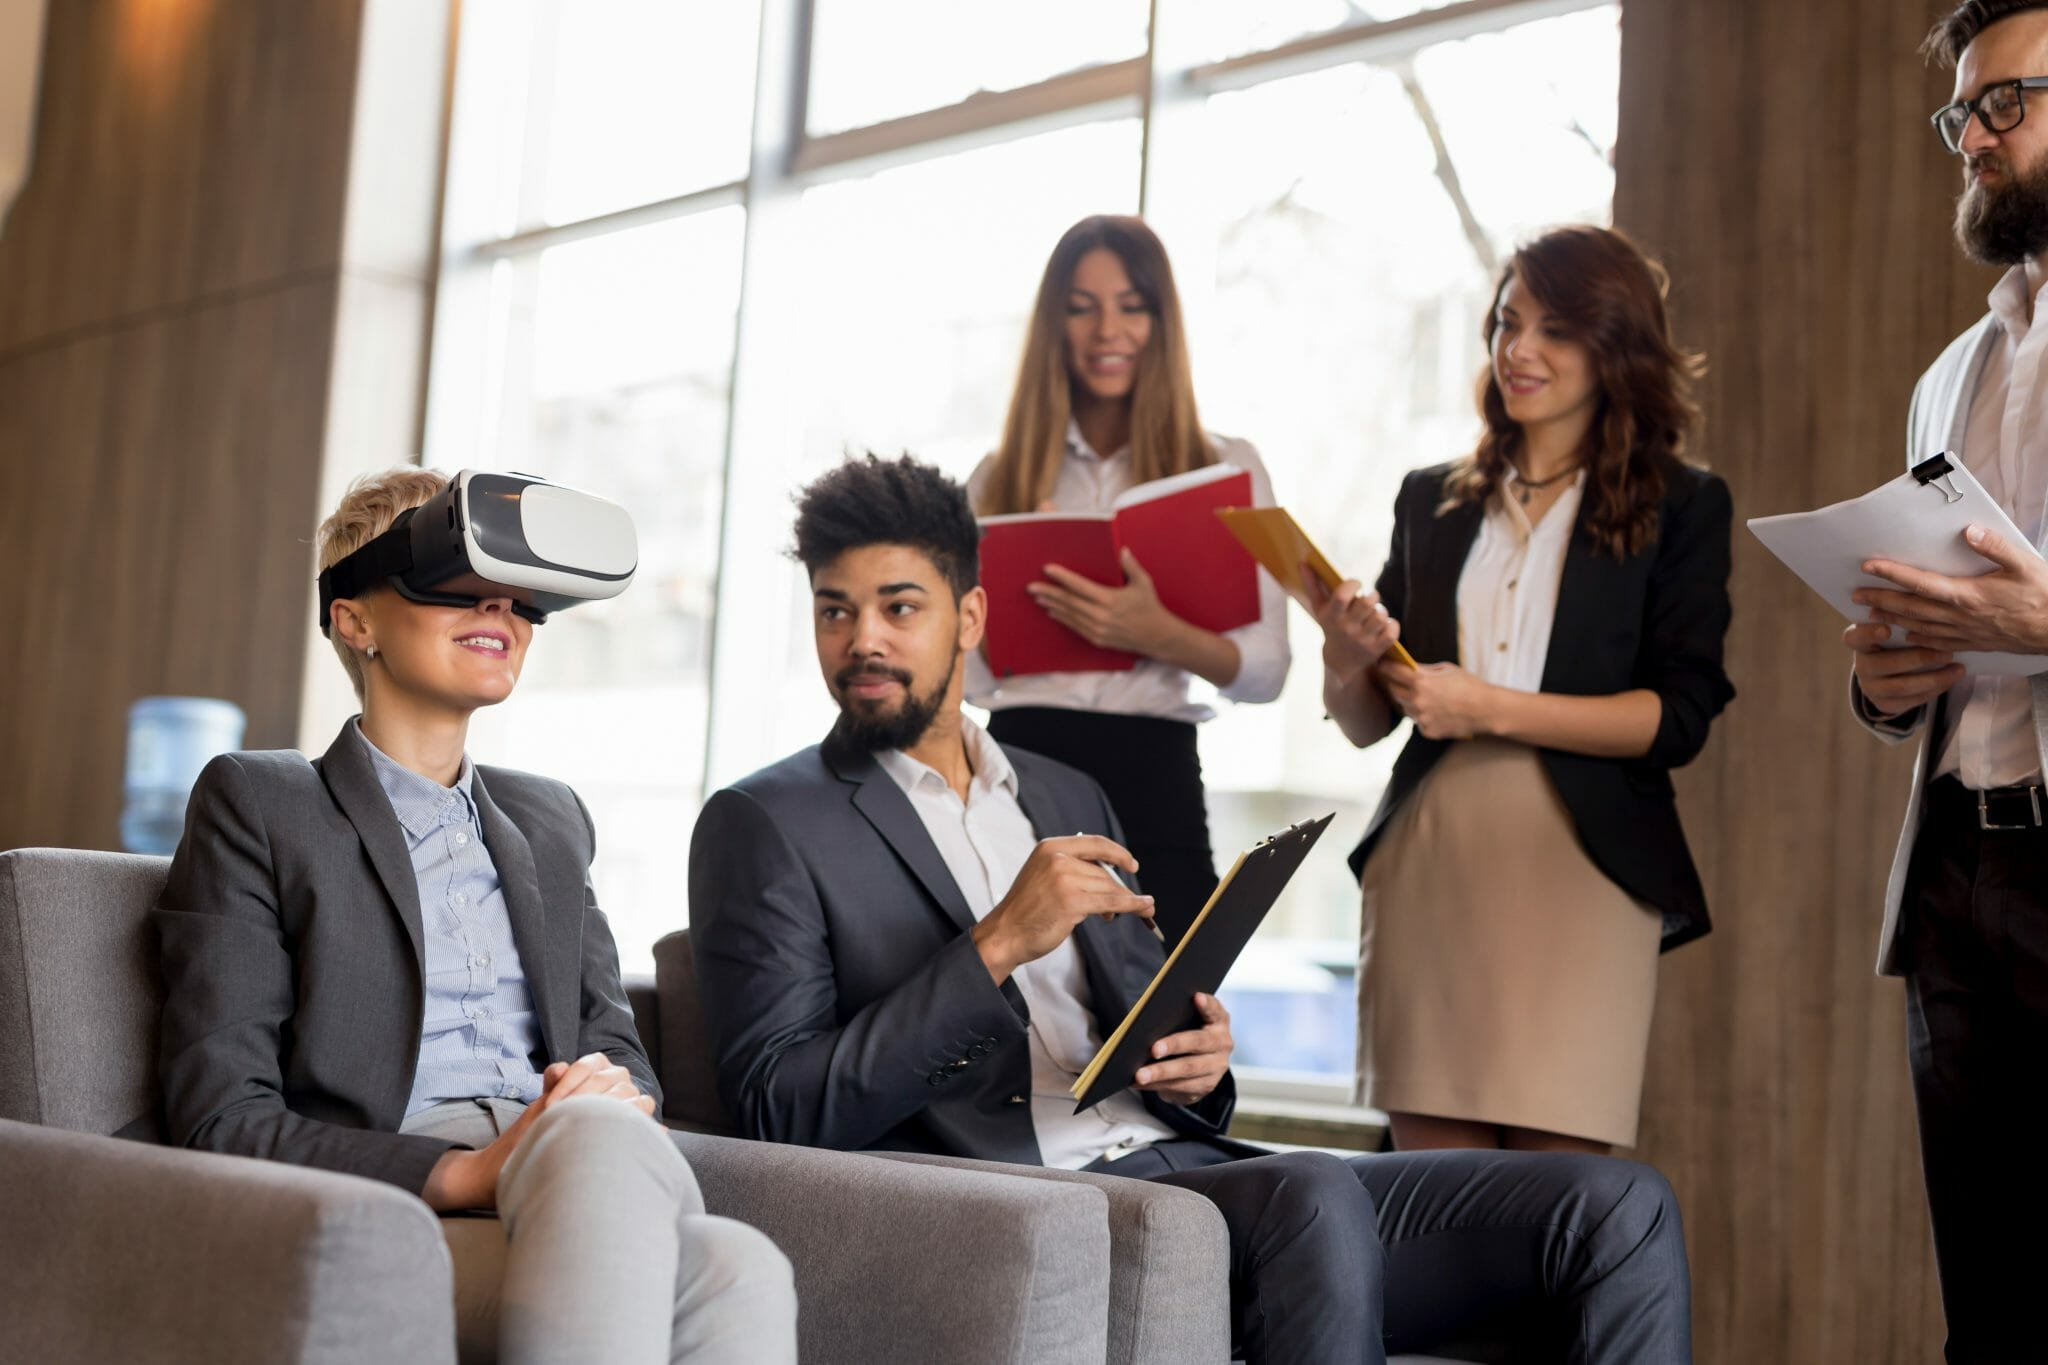 Group of people watching a coworkers VR demonstration